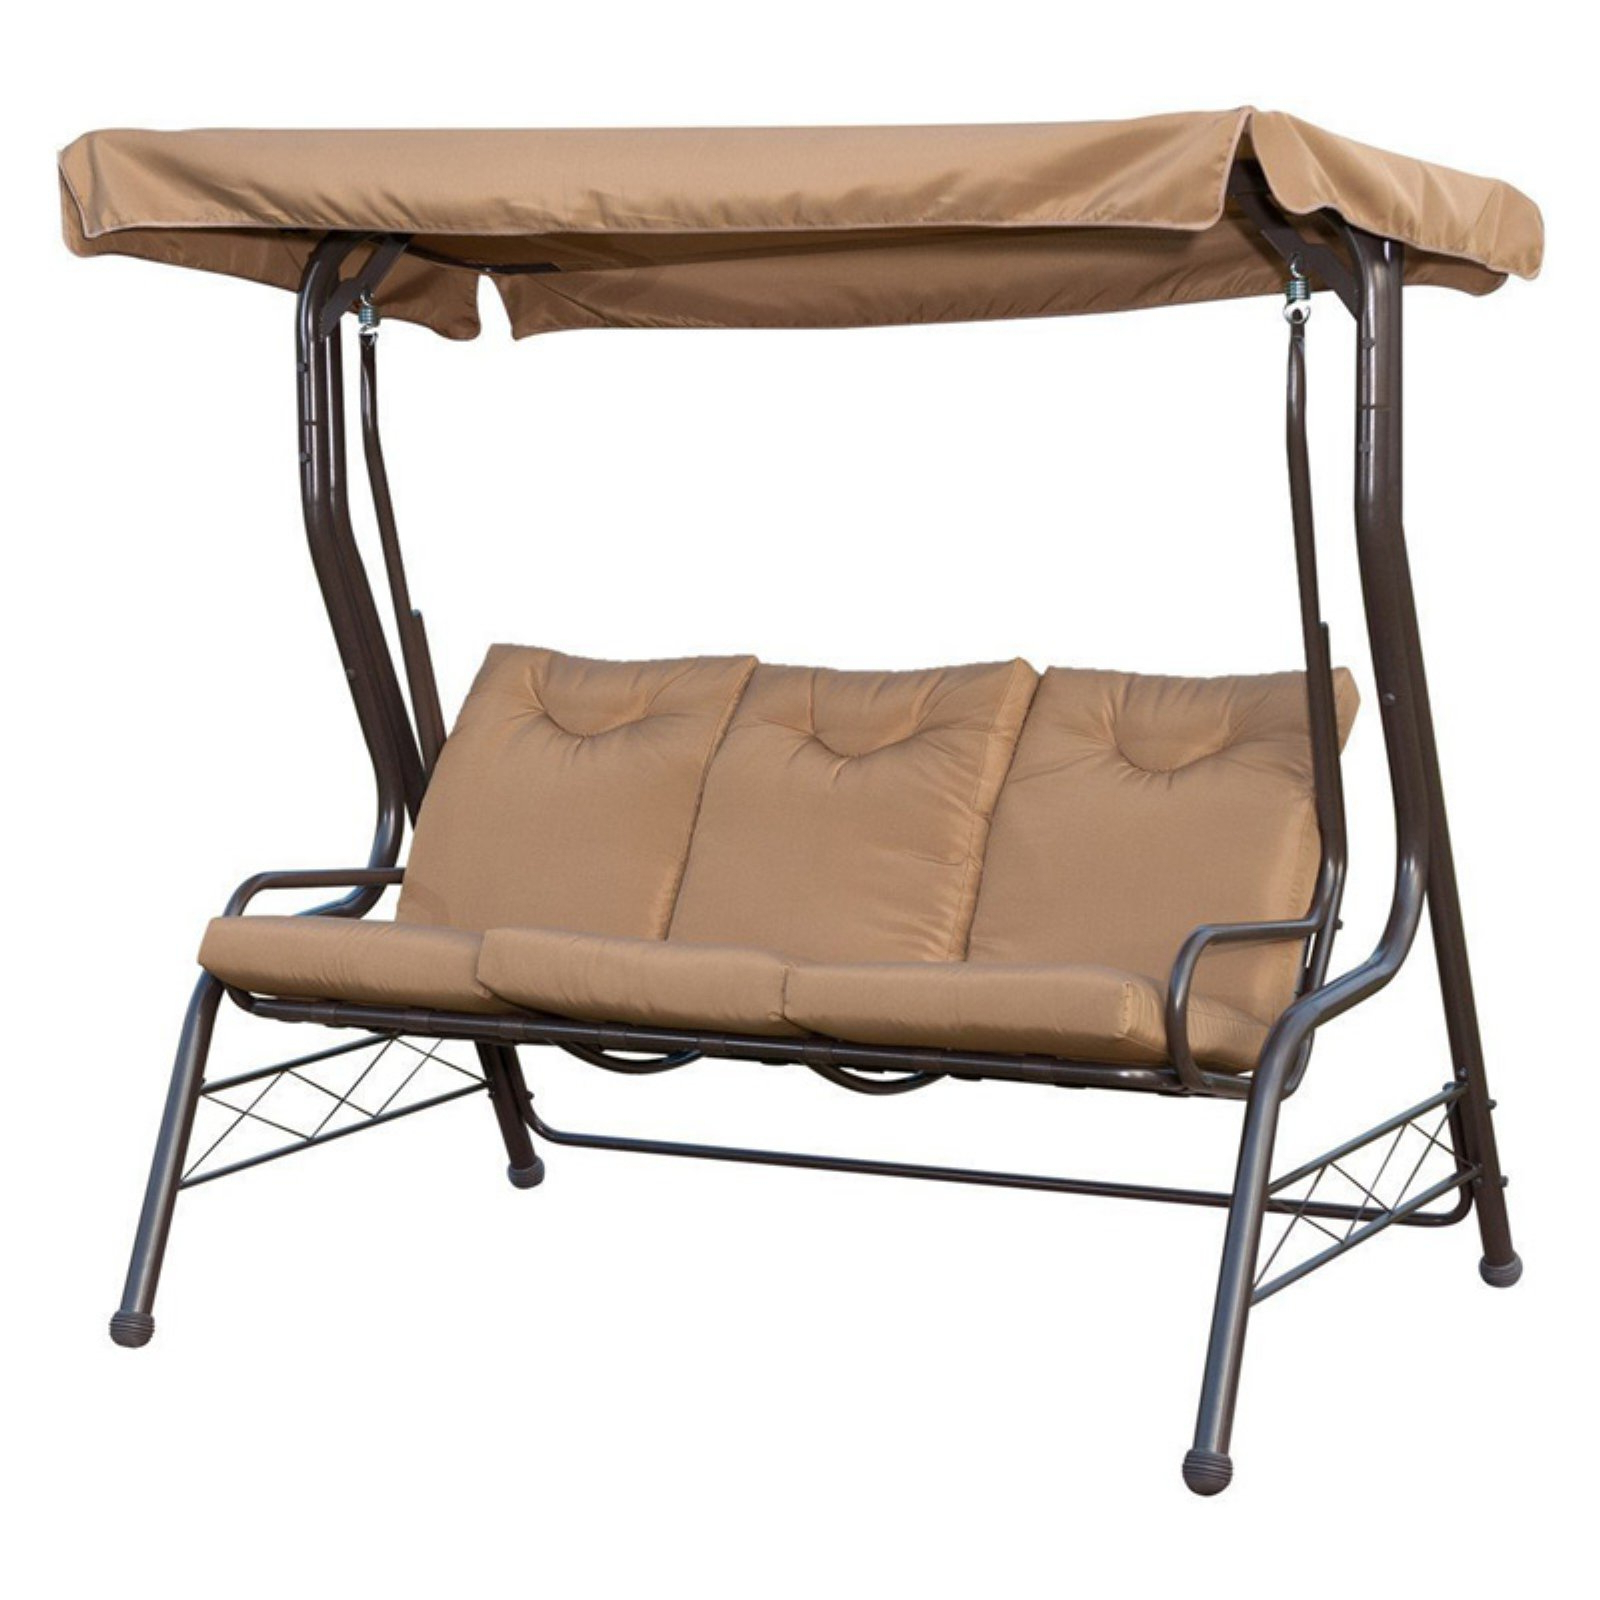 Favorite Patiopost 3 Seat Padded Porch Swing With Frame And Canopy Throughout 3 Seats Patio Canopy Swing Gliders Hammock Cushioned Steel Frame (View 17 of 30)